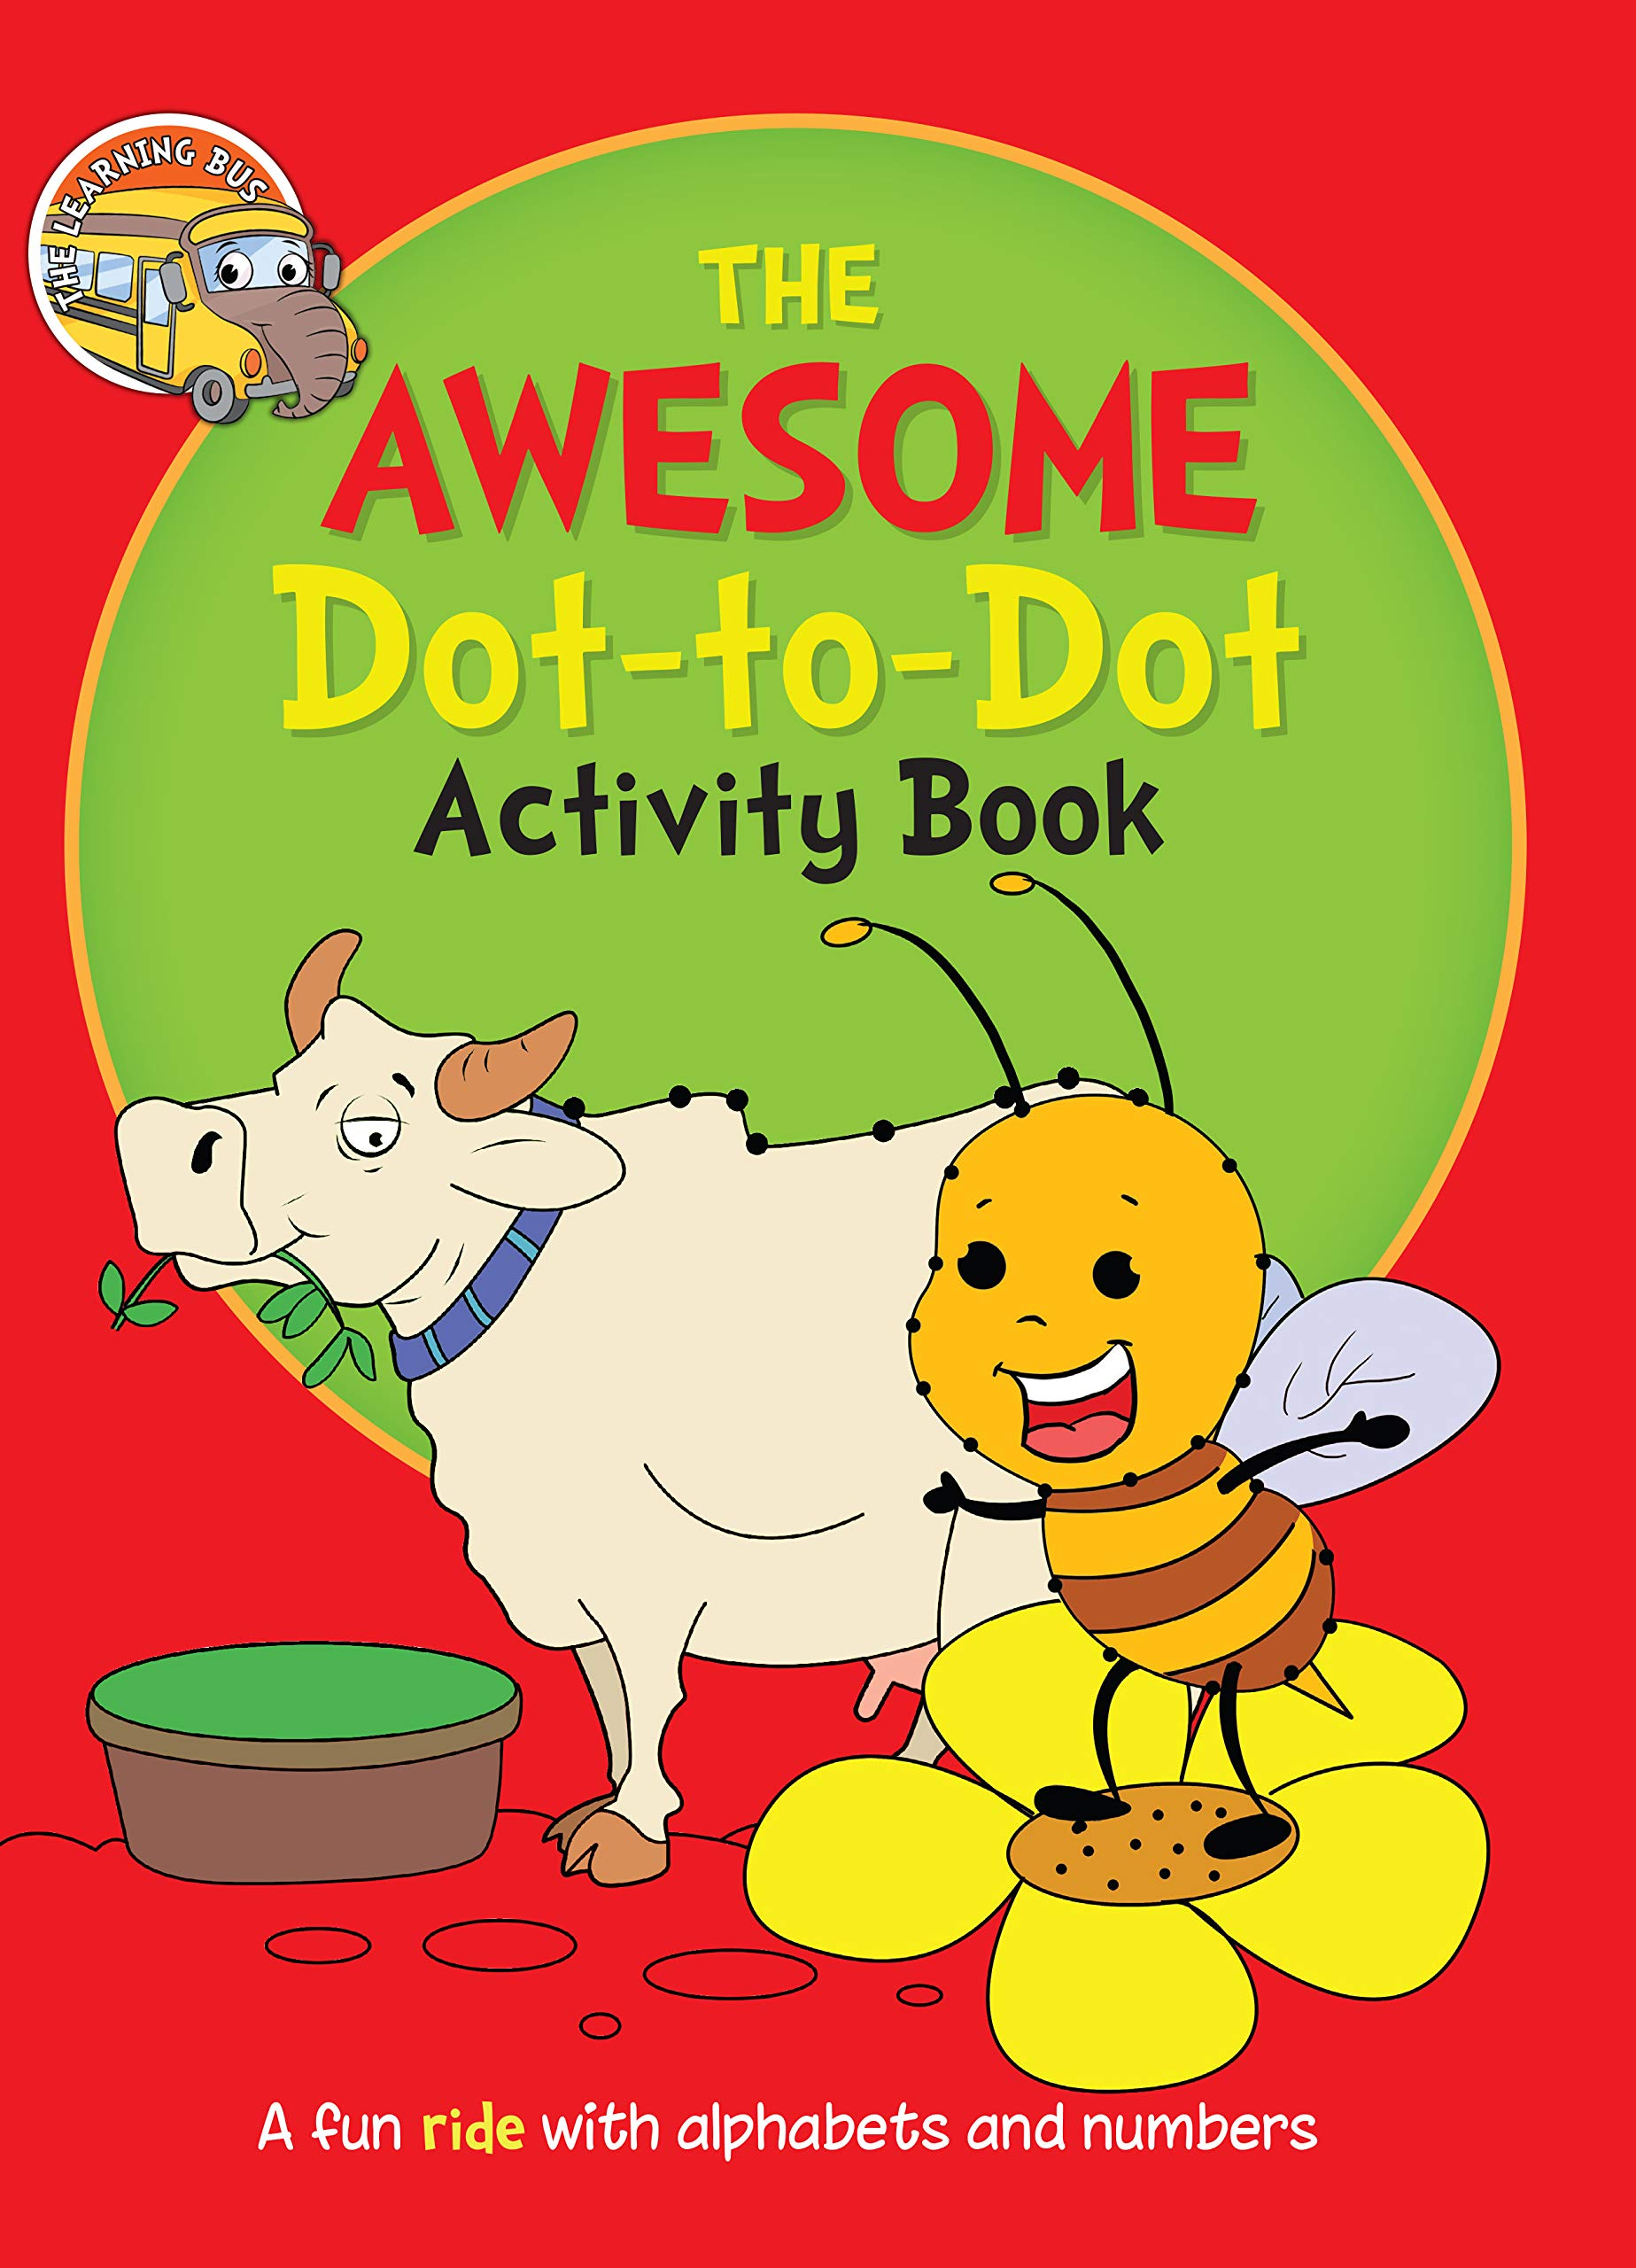 Activity Book: The Awesome Dot-to-Dot Activity Book for Children ( A-Z, a-z)